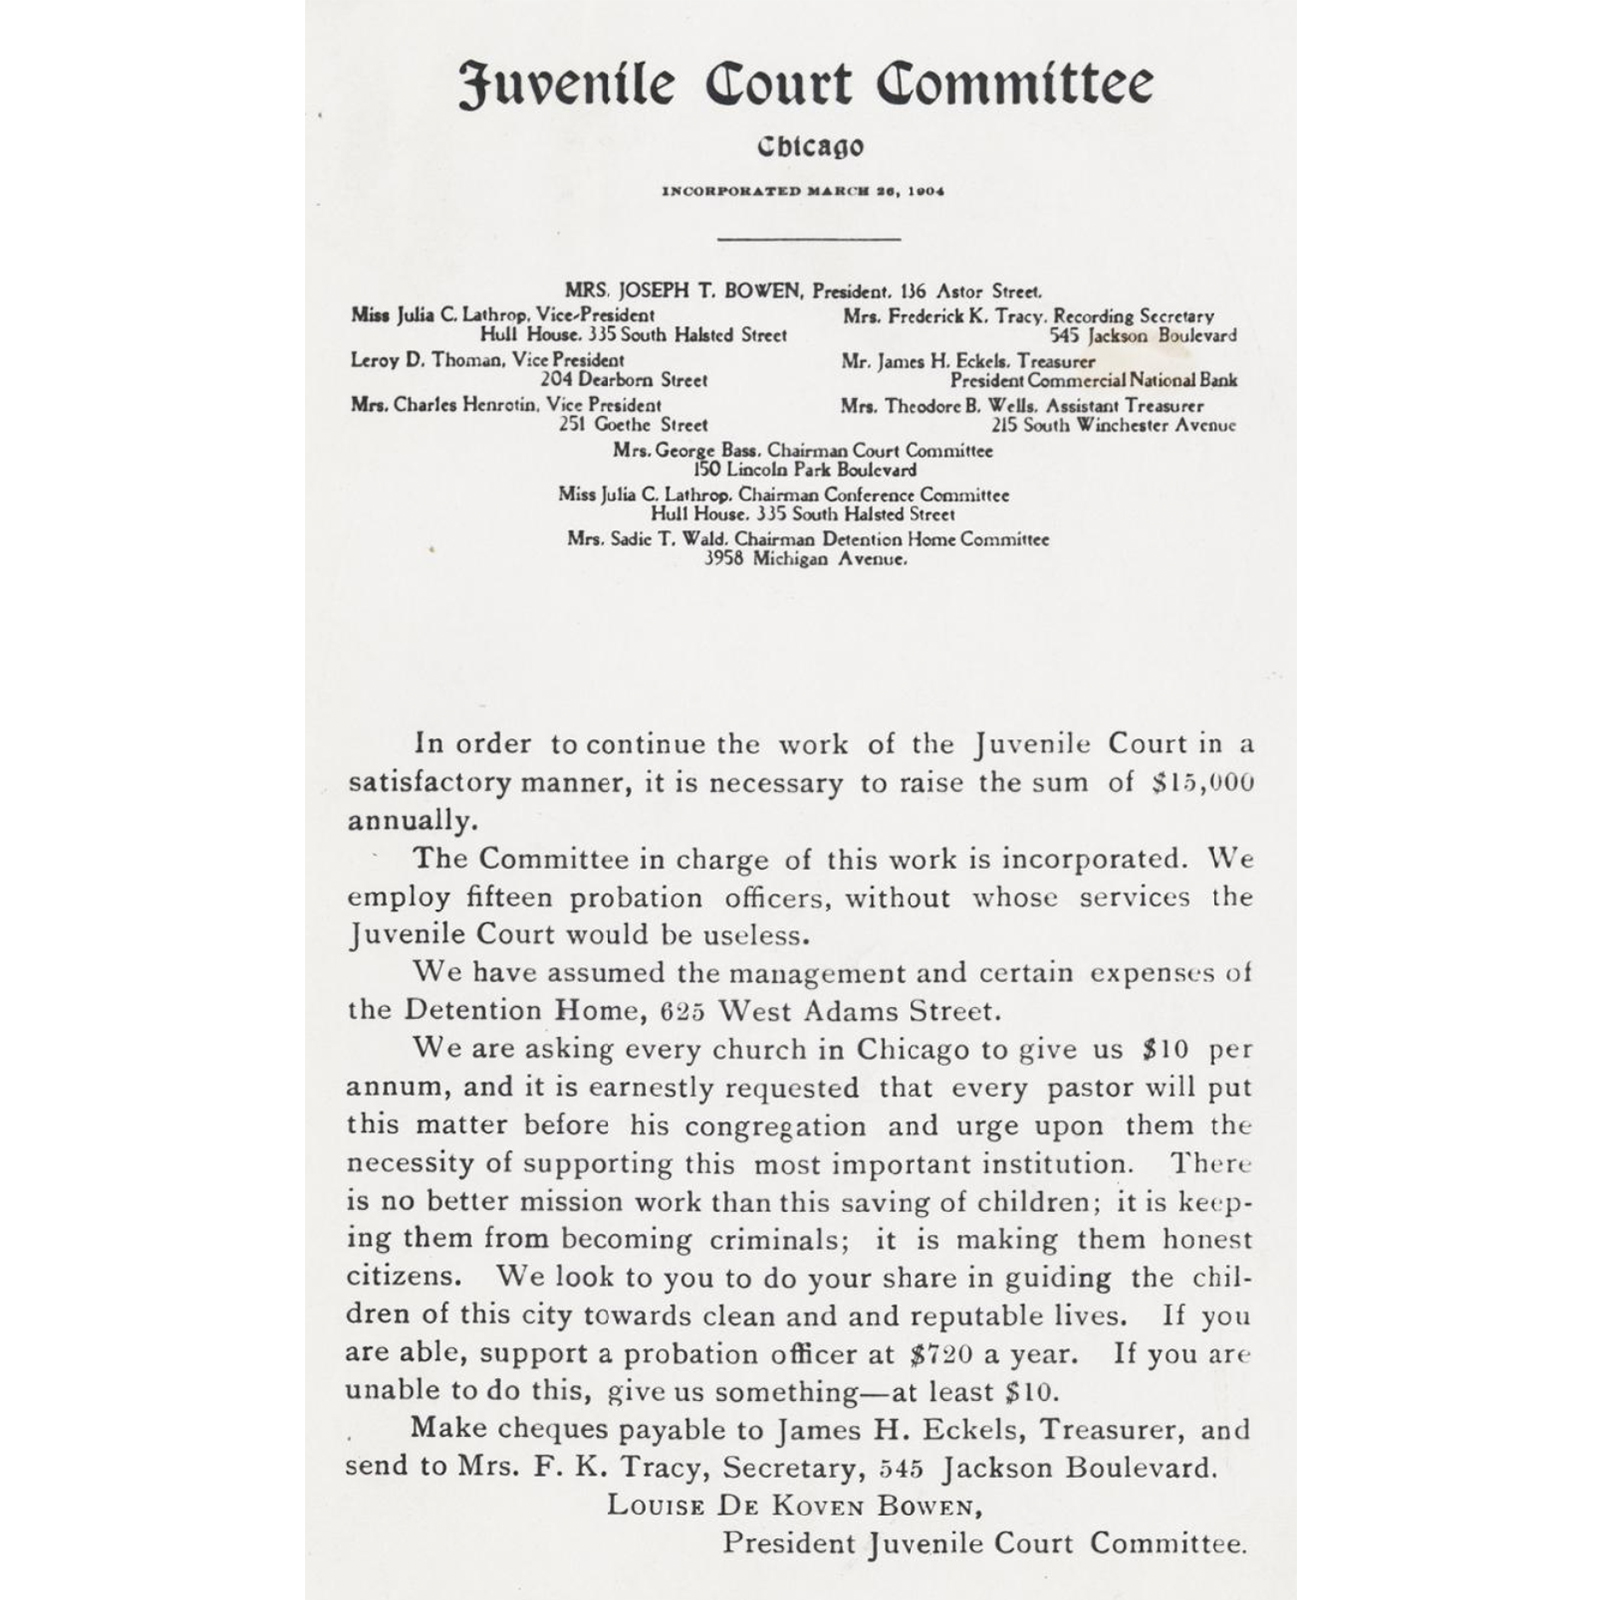 A 1904 flyer from the Juvenile Court Committee urged churches to donate money to support the court's operations. (Courtesy Chicago History Museum, ICHi-37491)